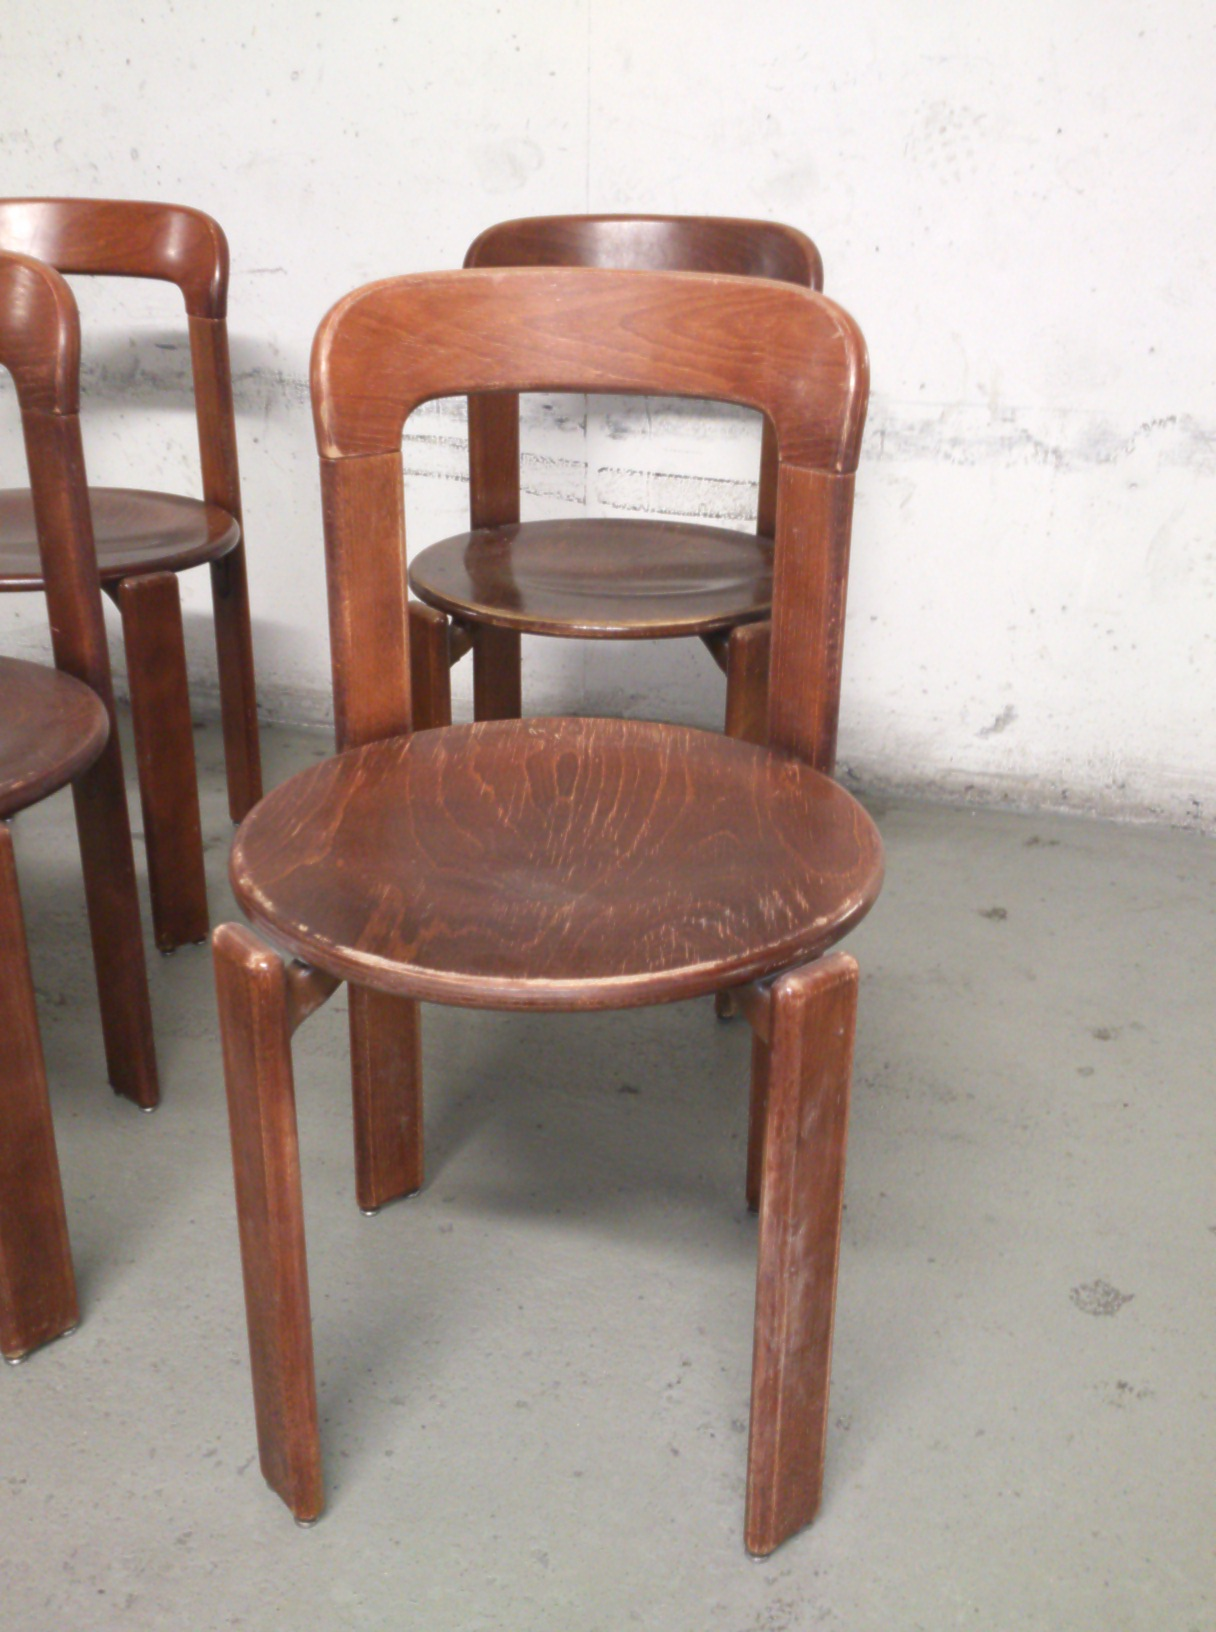 Set of 4 Bruno Rey chairs 8 chairs available in total